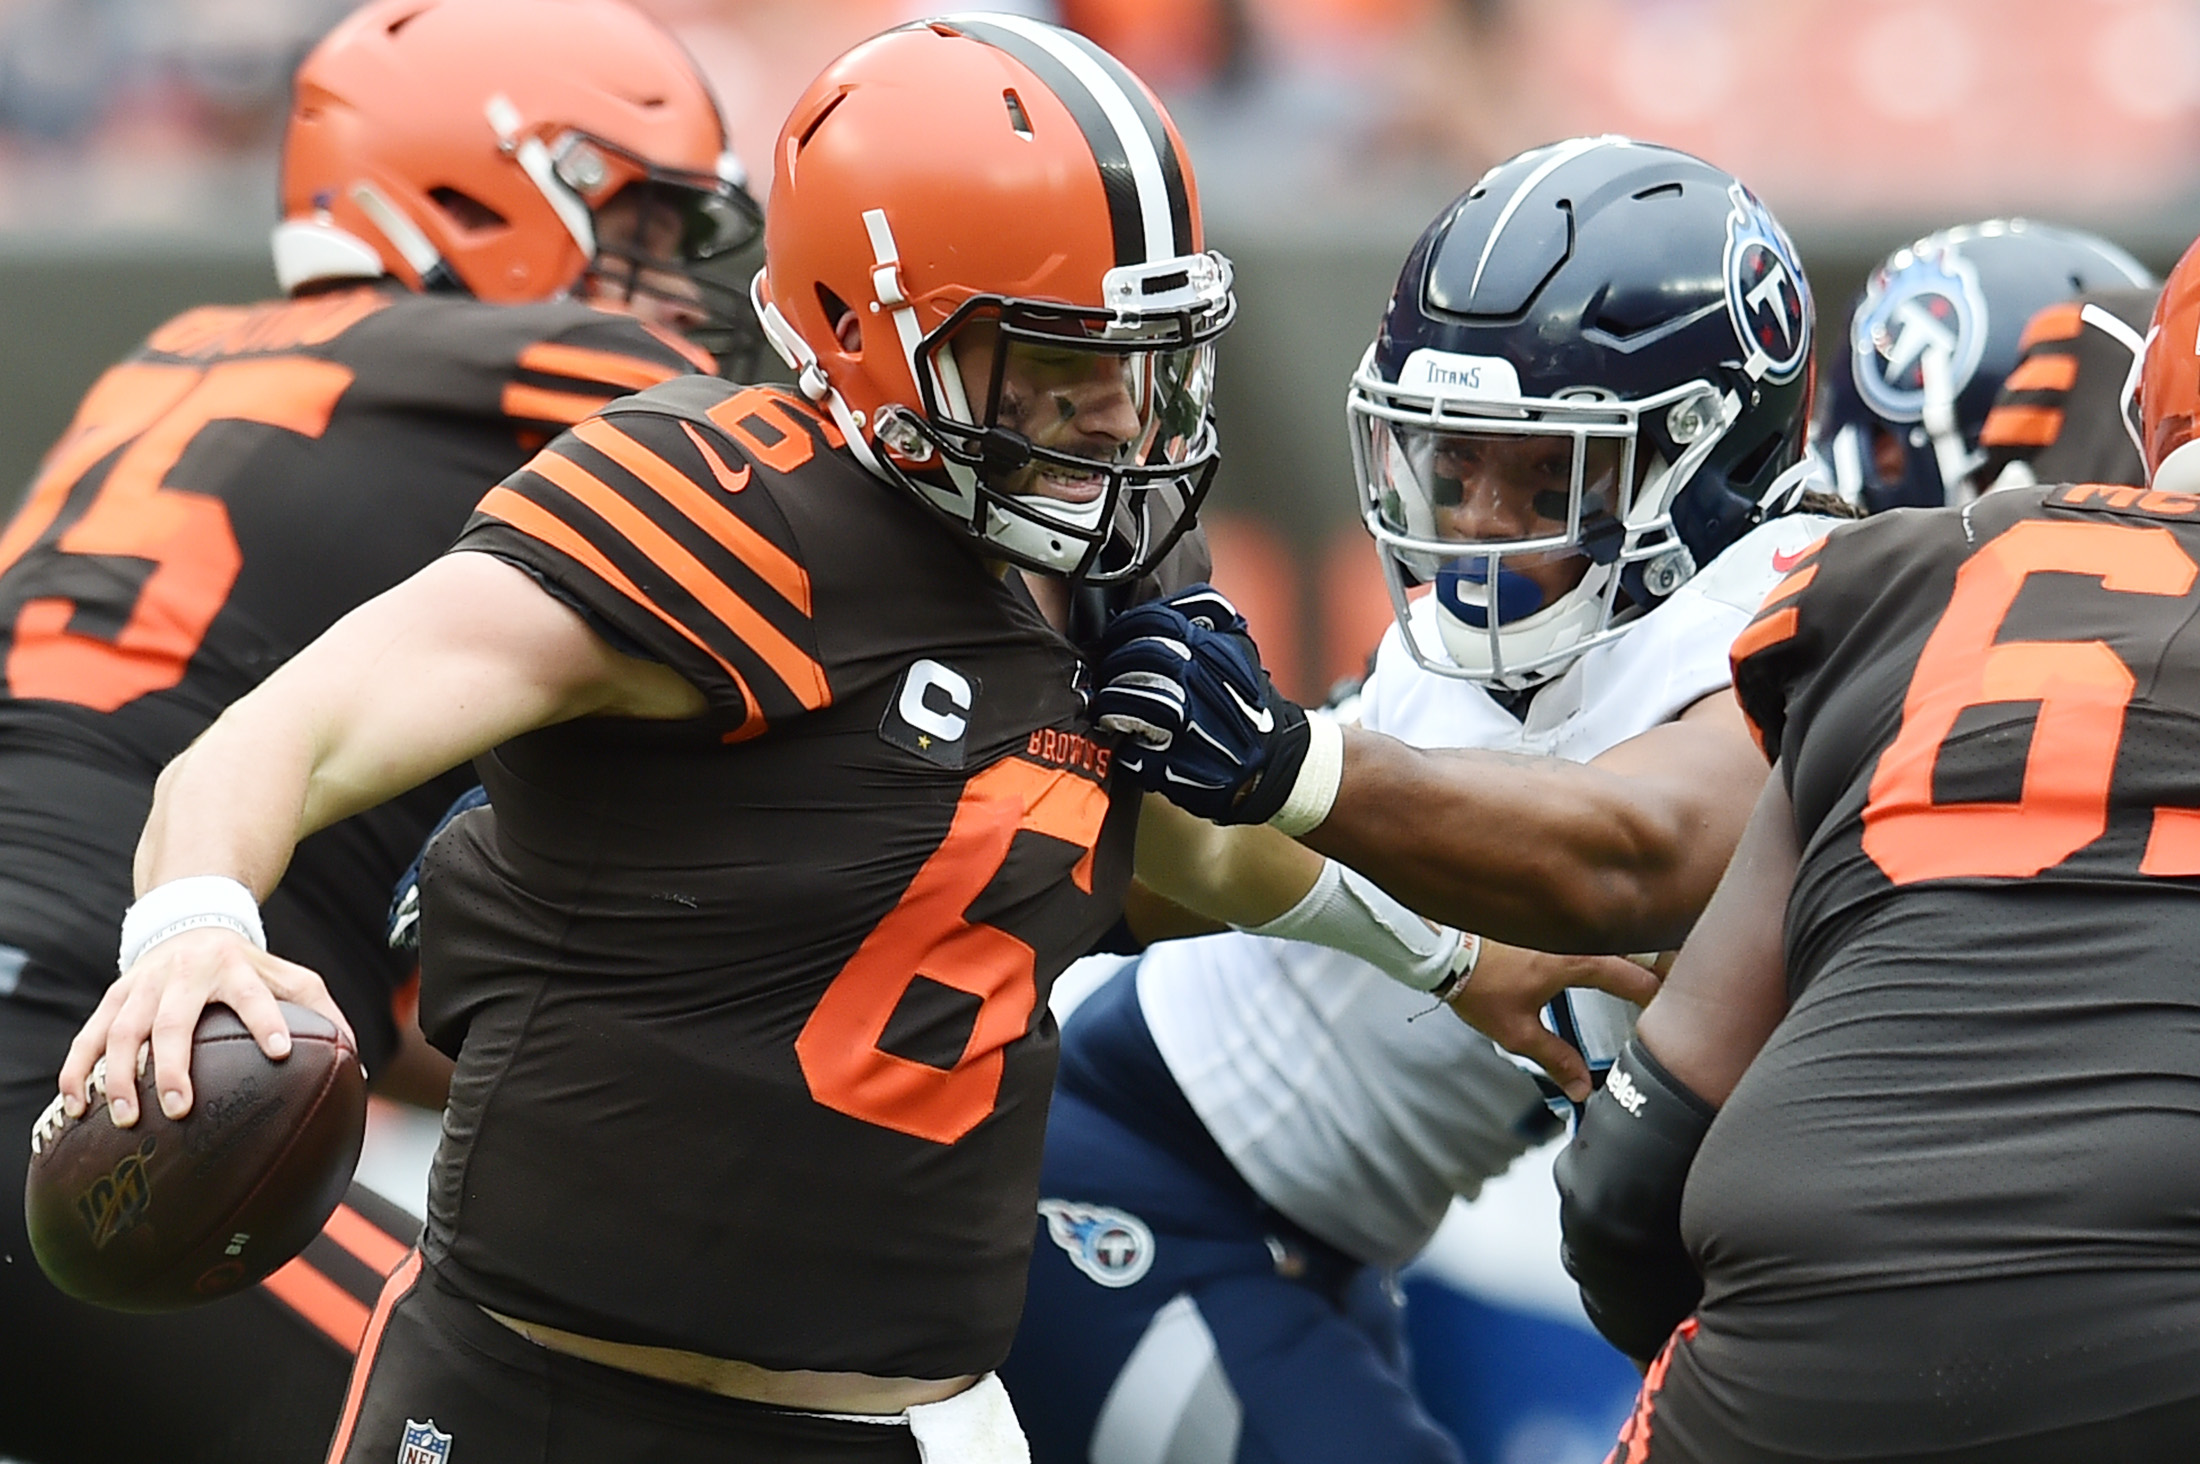 NFL: Tennessee Titans at Cleveland Browns